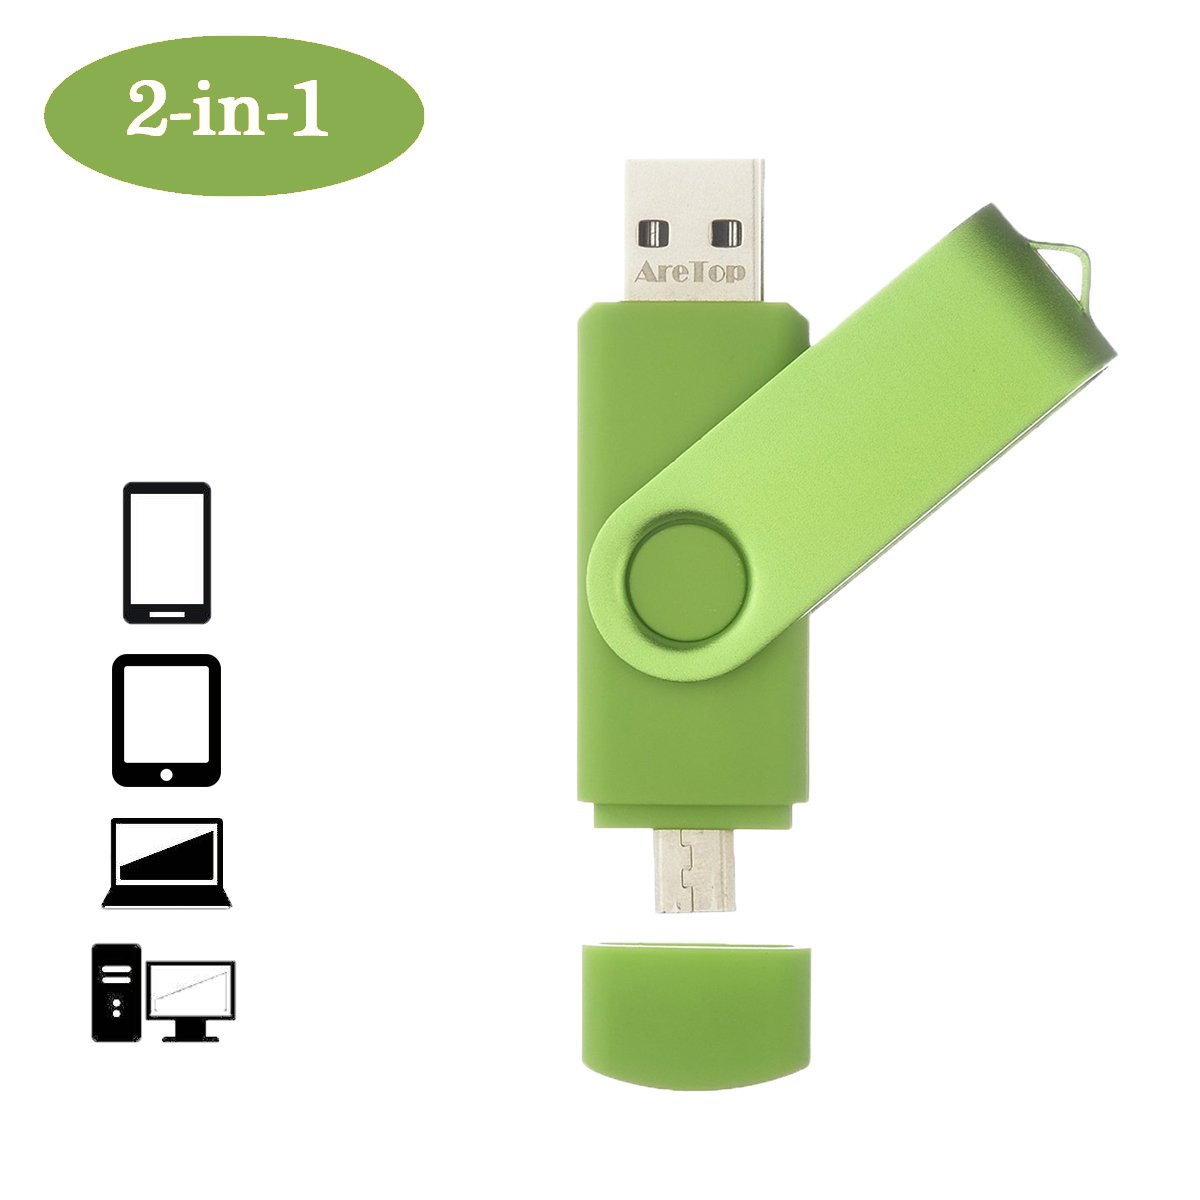 Flash Drive 32GB for Smartphone, OTG USB2.0 Dual Flash Drive Disk ARETOP Memory Stick Thumb Drives Pen Drive for Computers and Android Devices (Smartphones Tablets PC Samsung Galaxy,etc.) Green